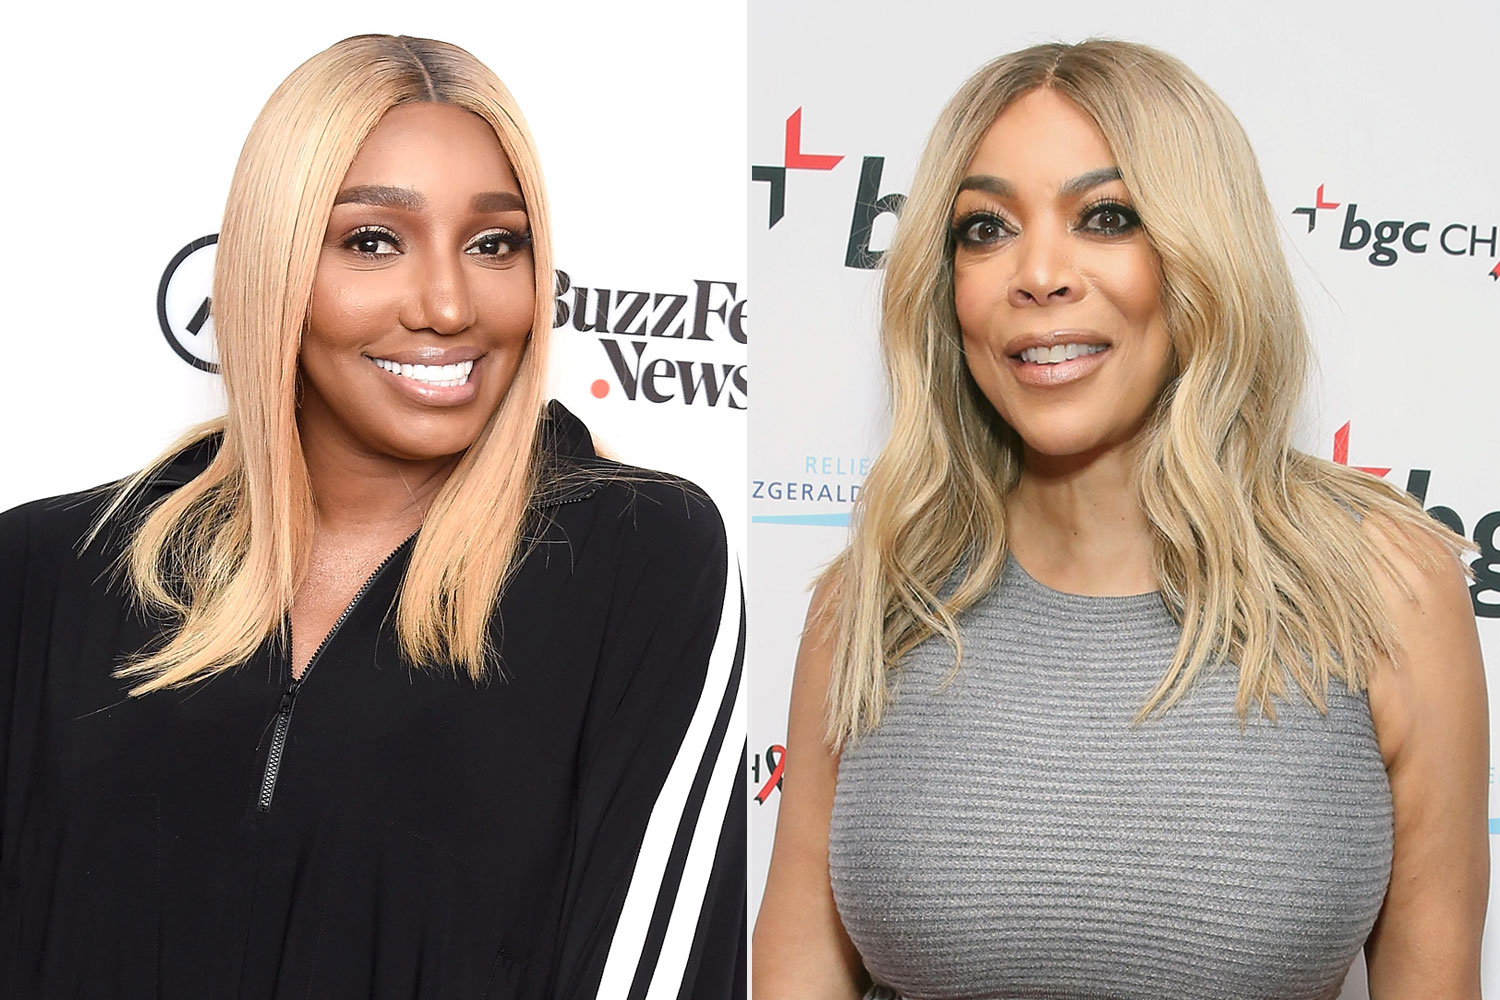 RHOA's NeNe Leakes Opens Up About That 'Secret' Wendy Williams Nearly Spilled on Air